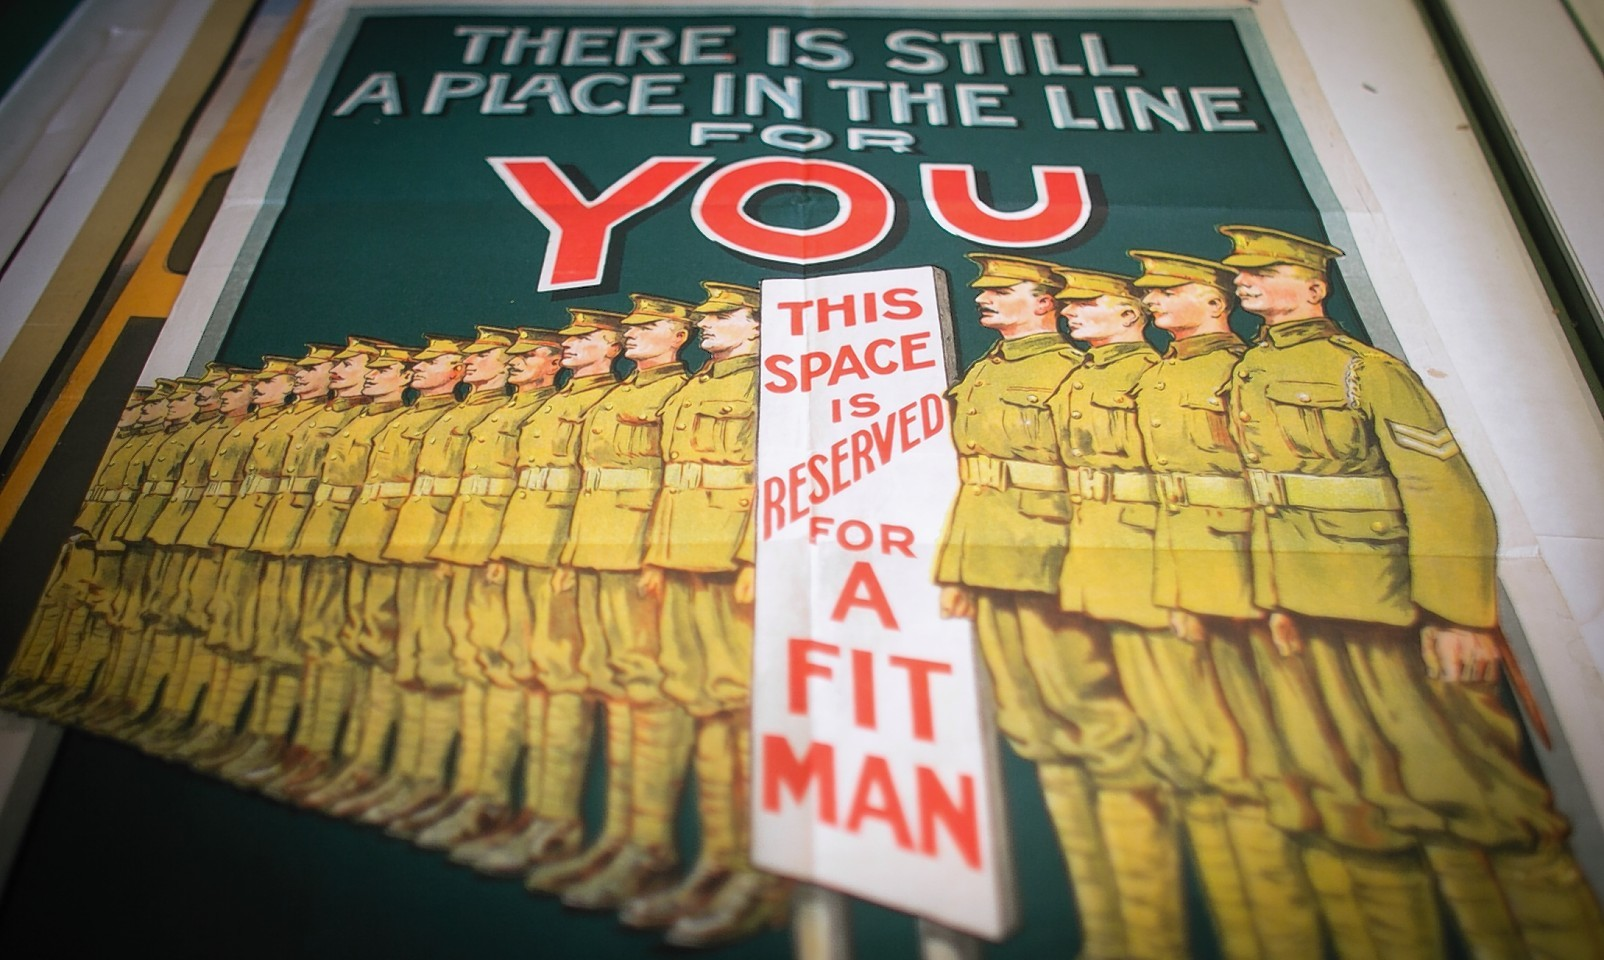 A collection of British Army recruitment posters from the First World War